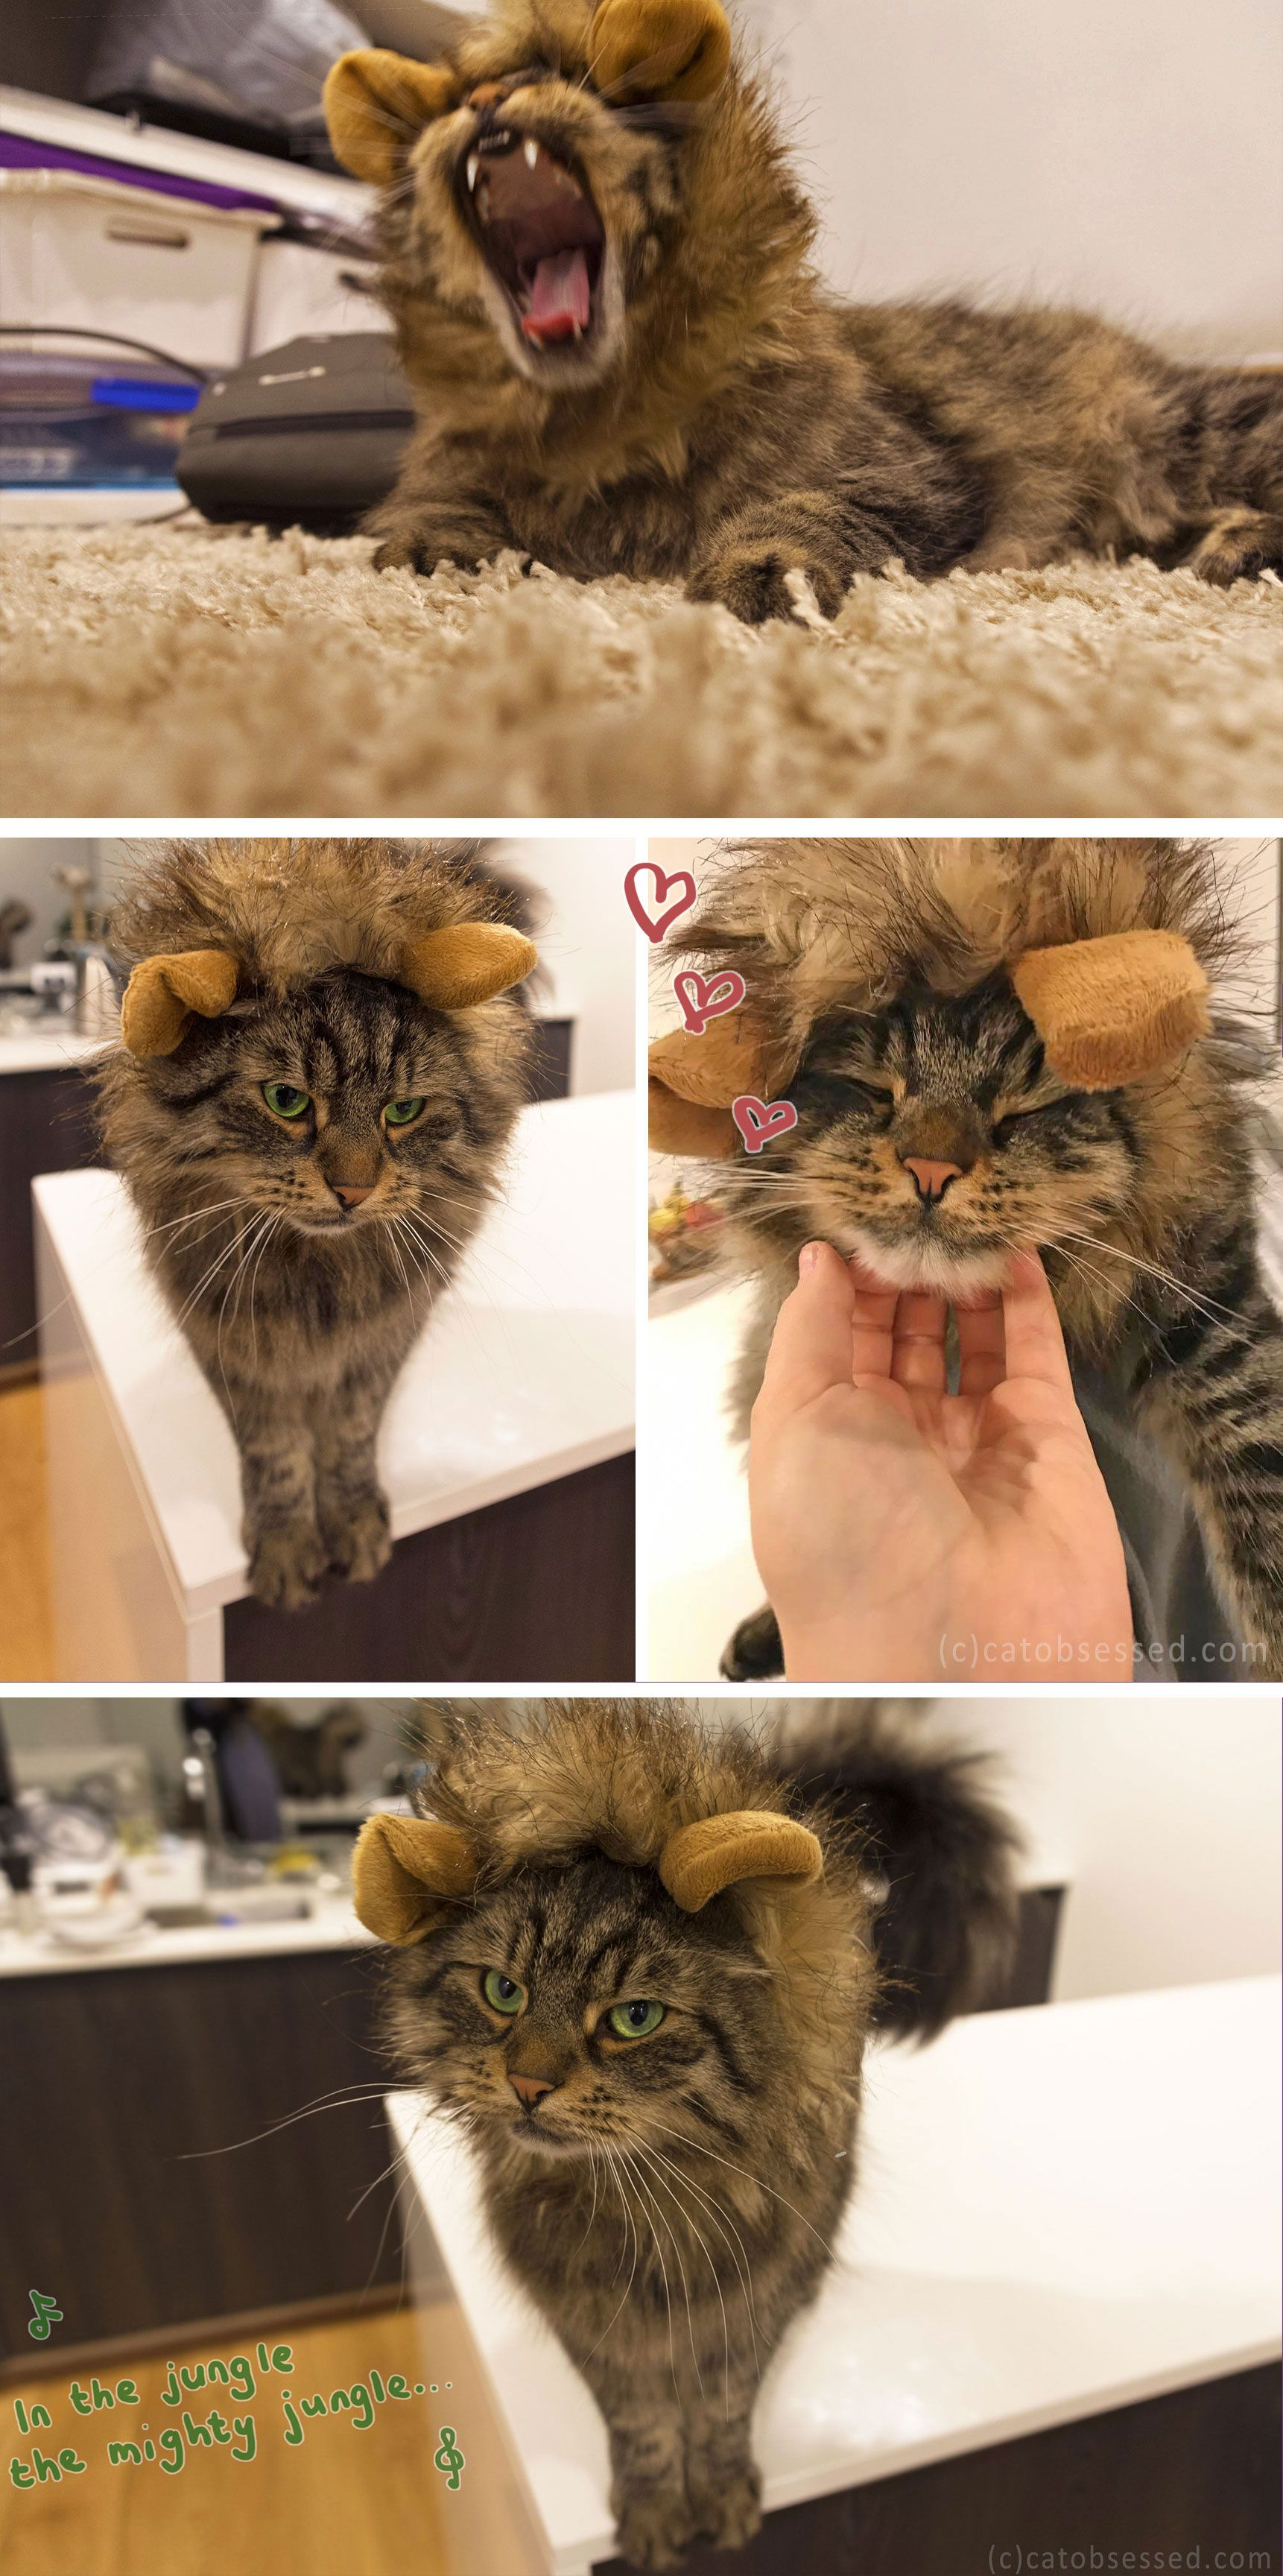 I dressed my cat up in a lion's mane!